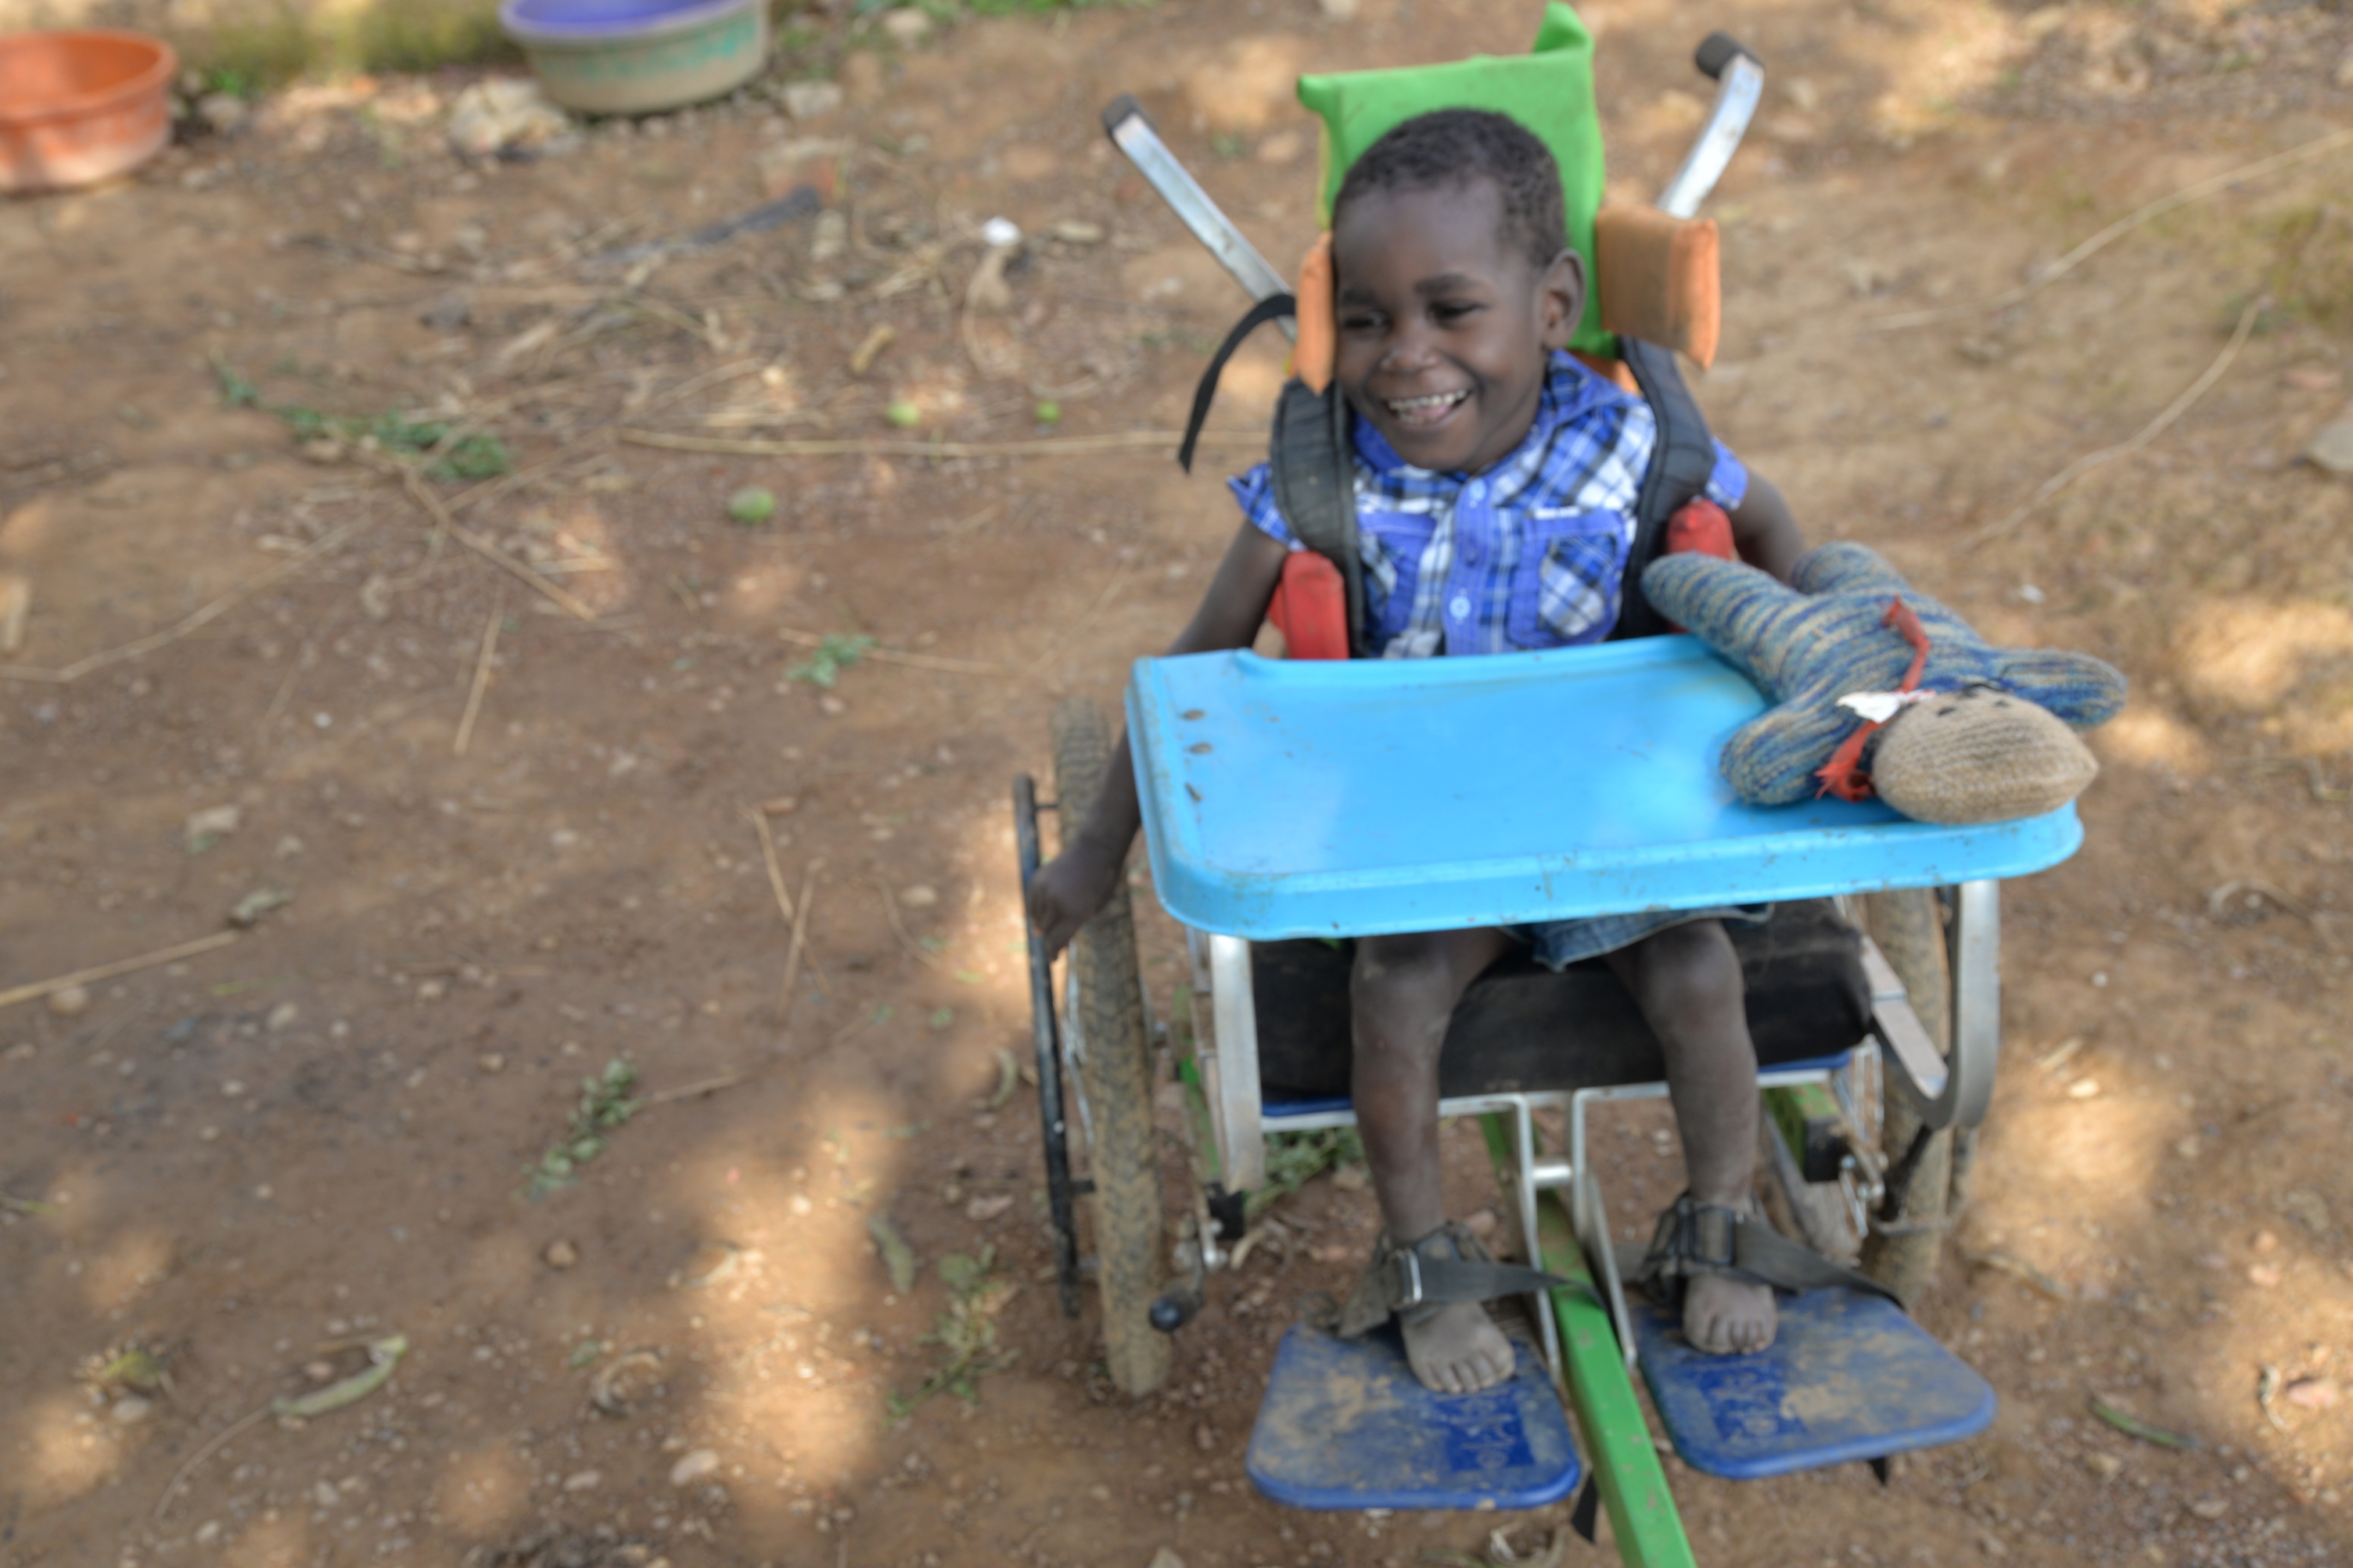 Wheelchair provides a solution